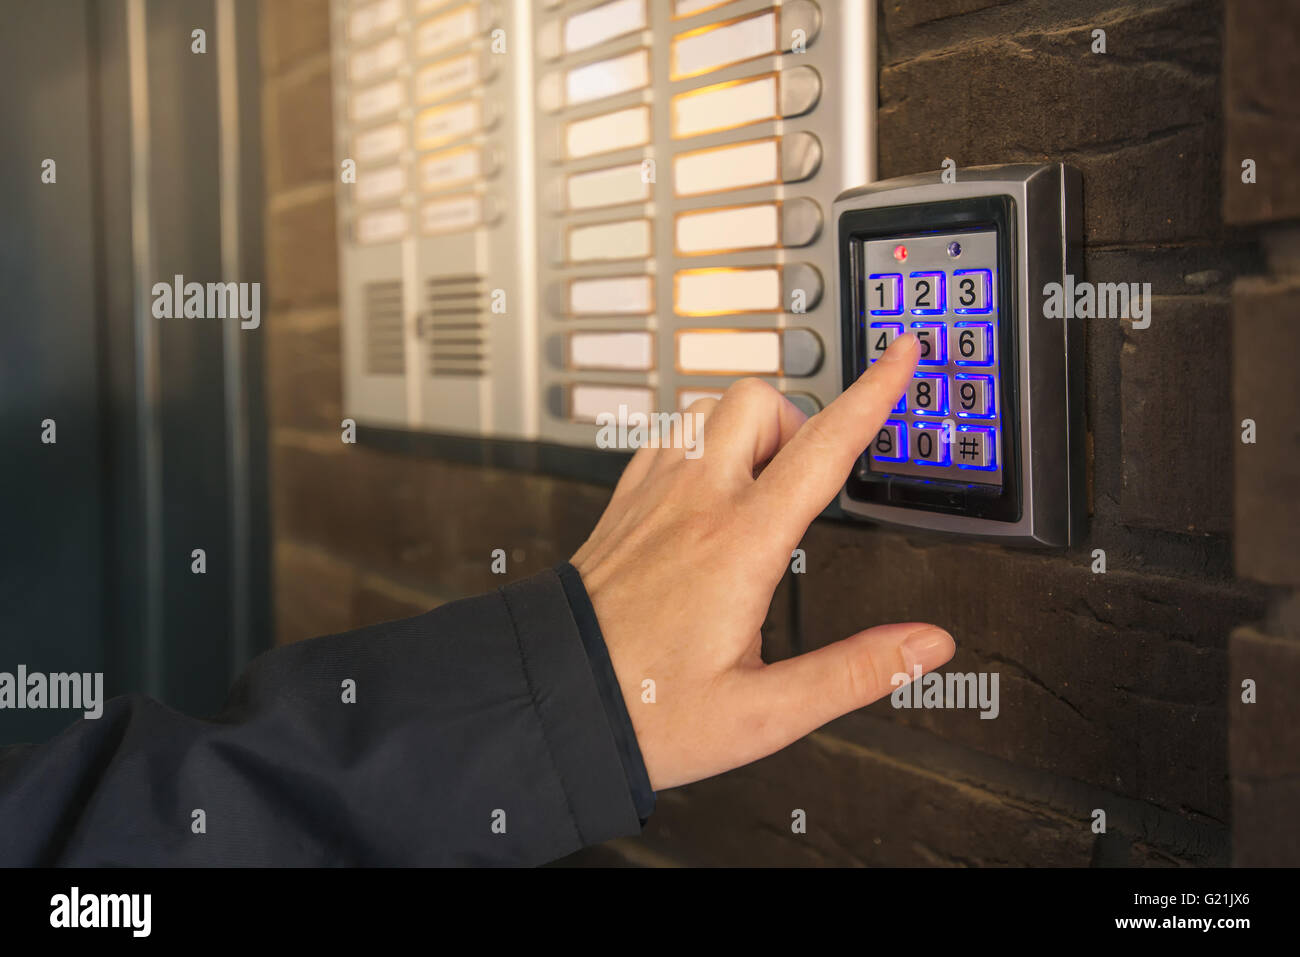 Woman dialing pass code on intercom security keypad to open entrance door of the apartment building. - Stock Image